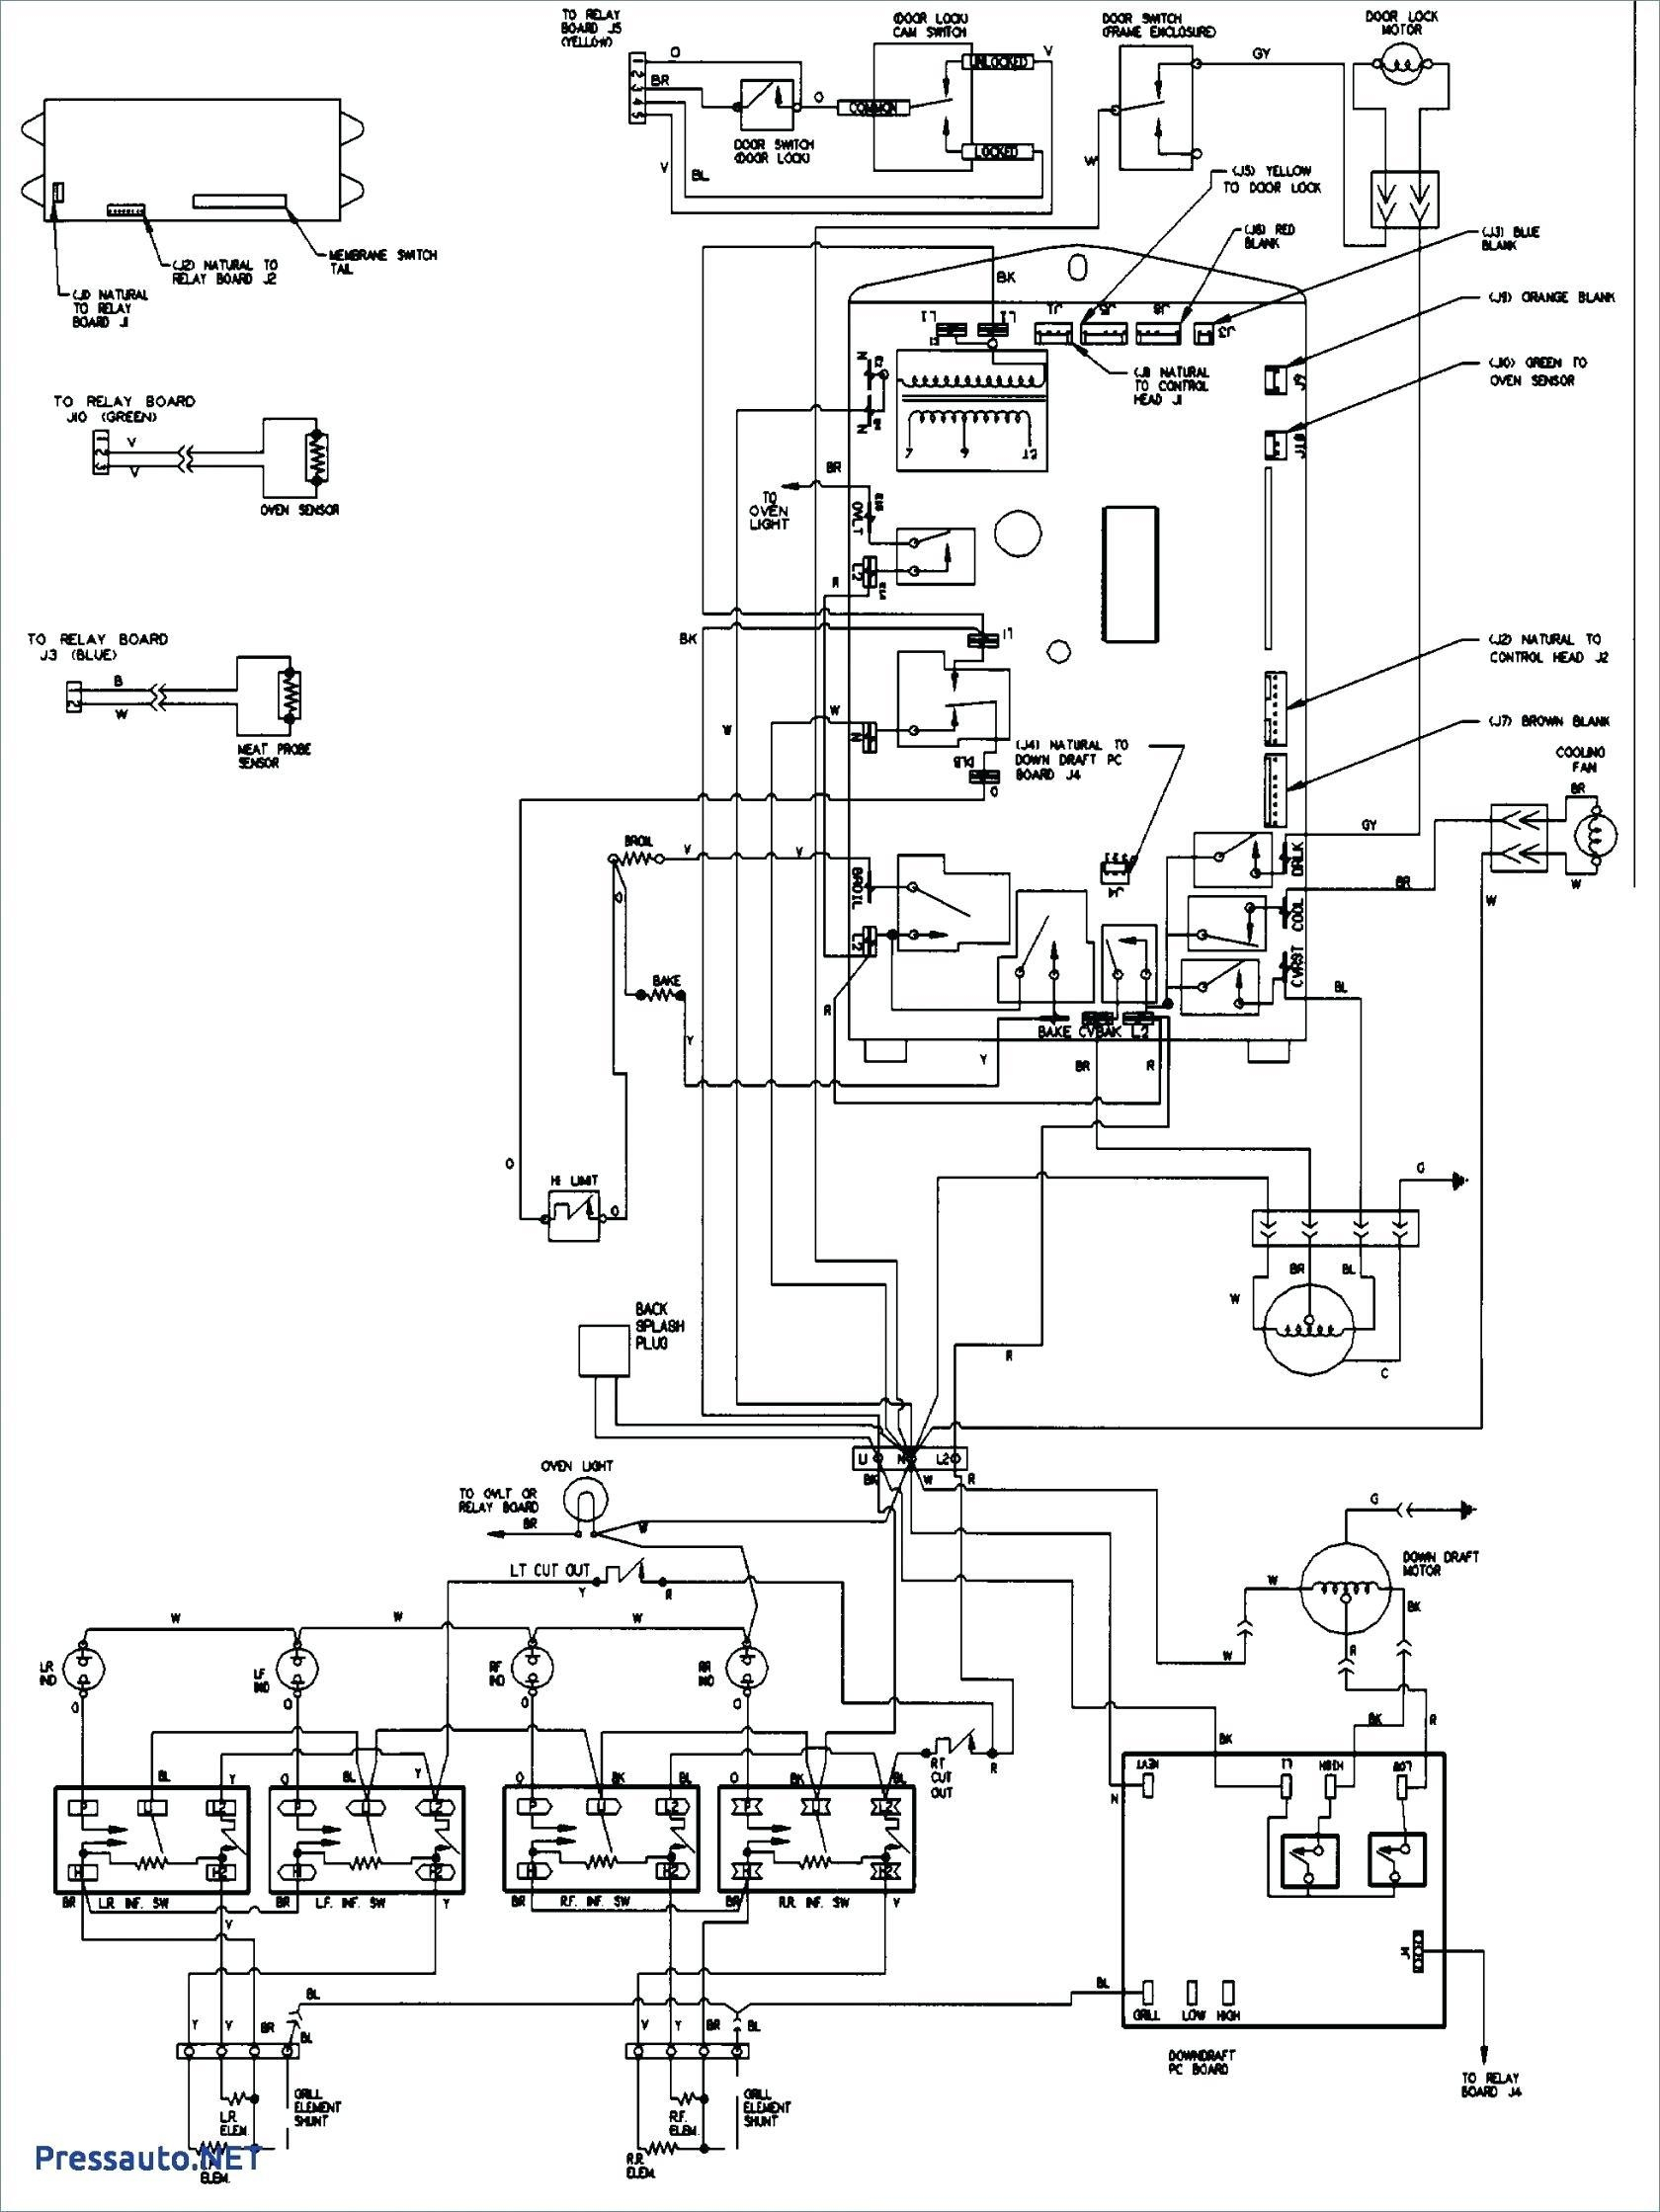 Kbmd 240d Wiring Diagram